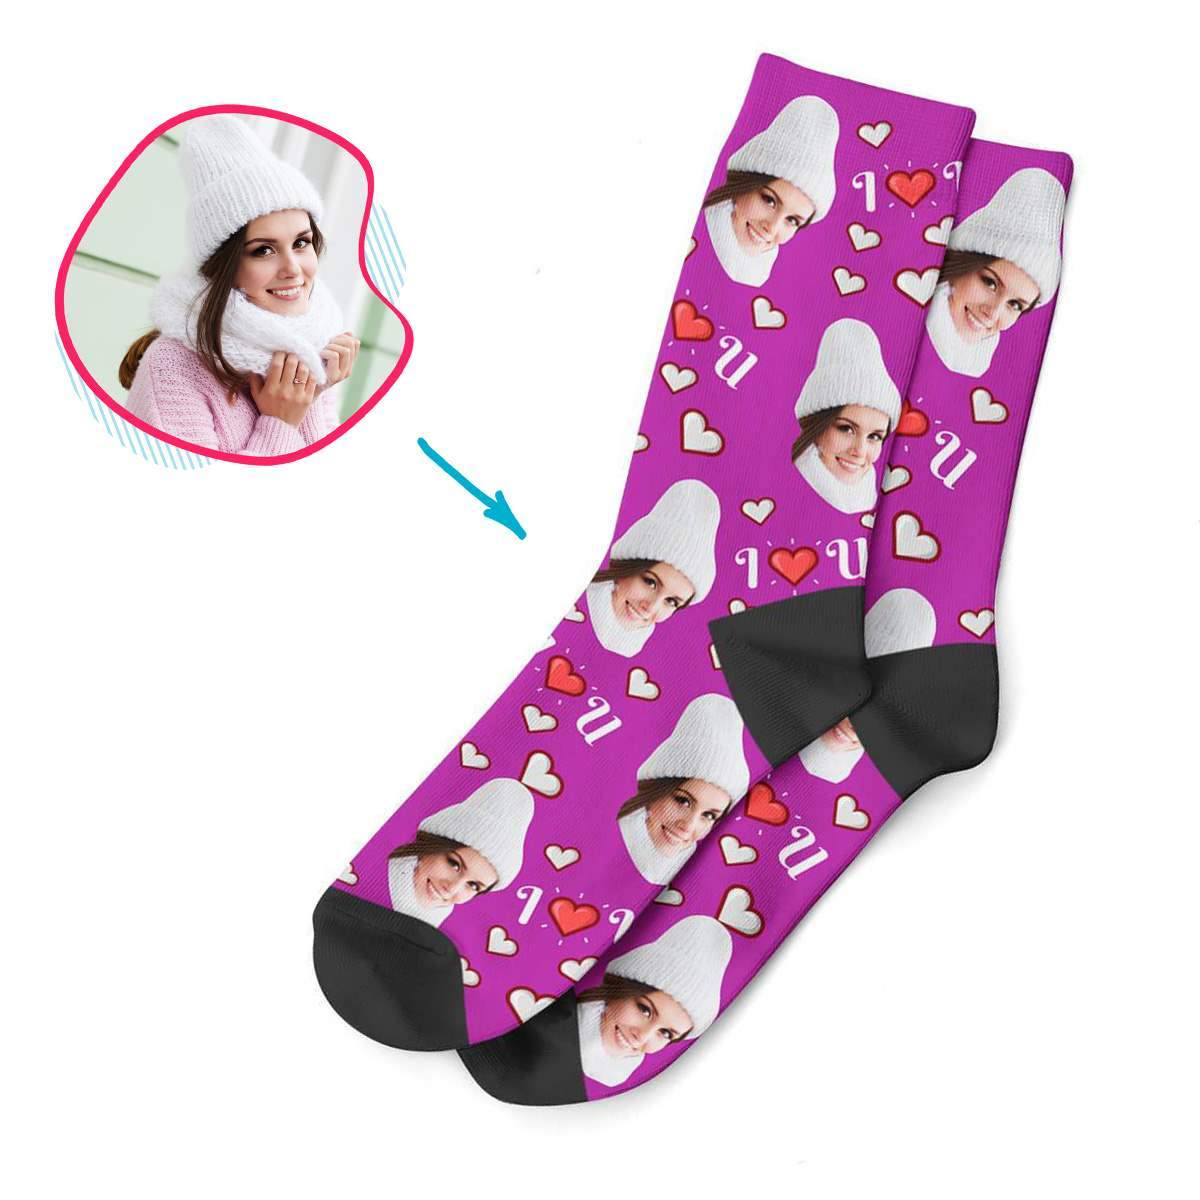 purple I <3 You socks personalized with photo of face printed on them